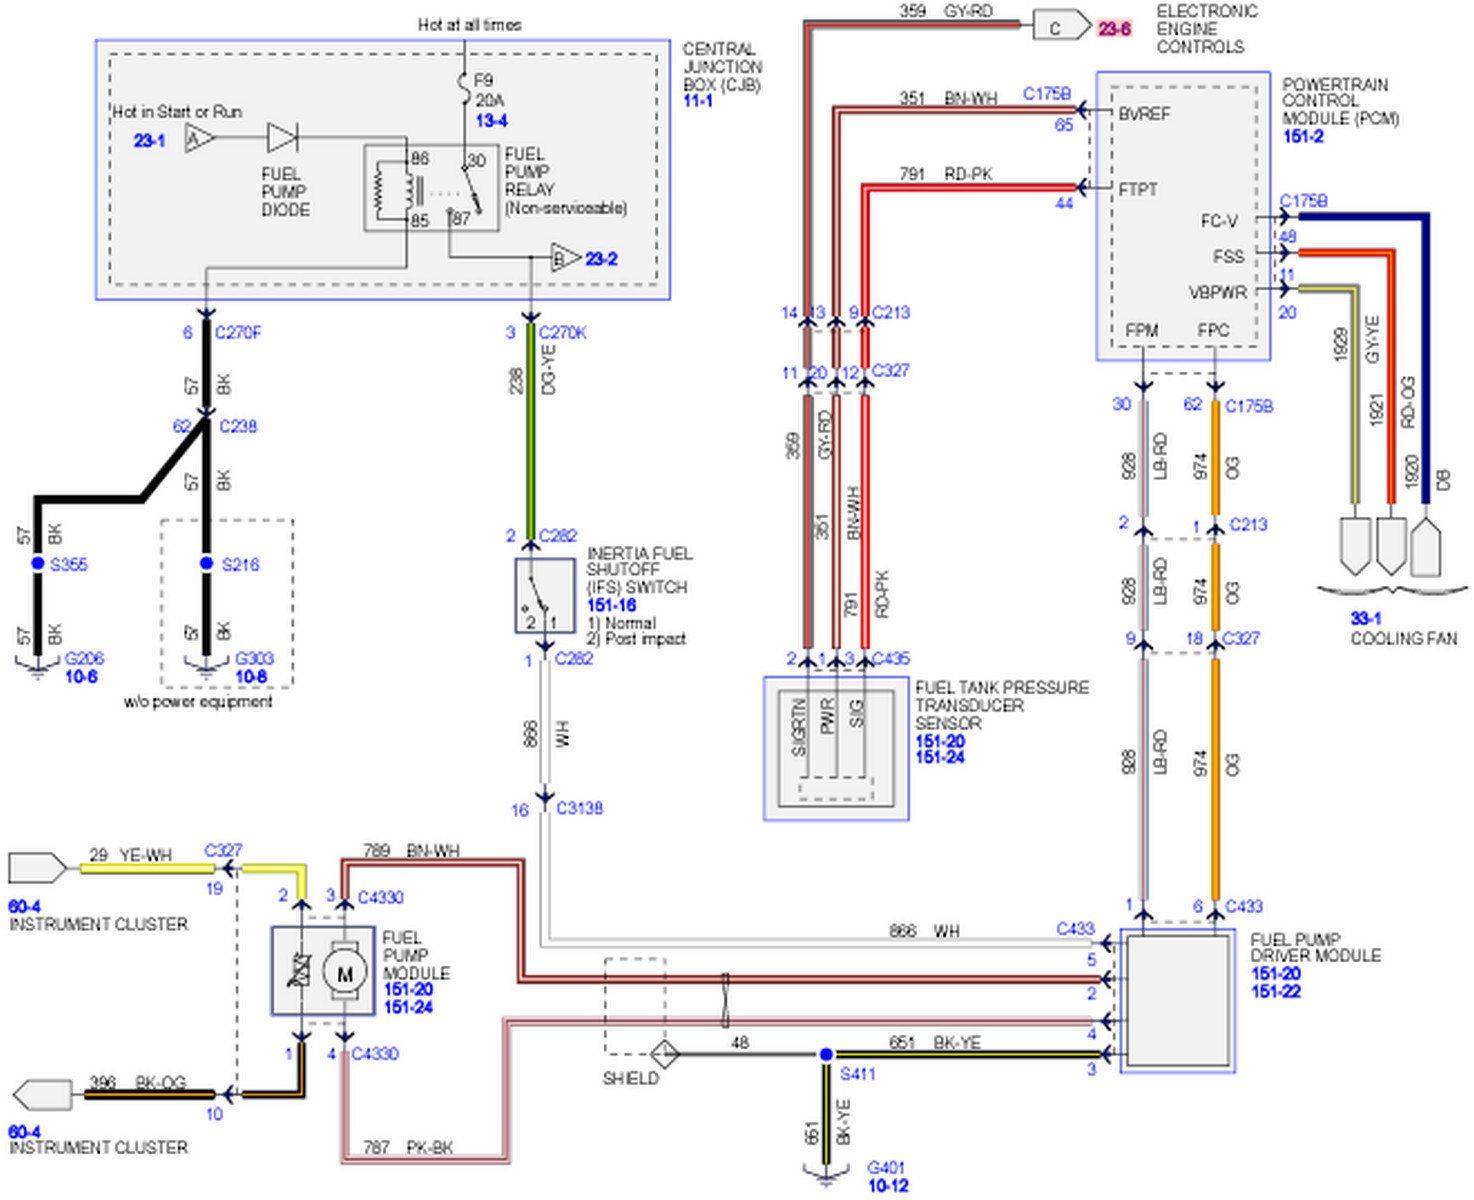 F Fuel System Wiring Diagram - 07 F750 Transmission Wiring Diagram -  toshiba.ke2x.jeanjaures37.frWiring Diagram Resource